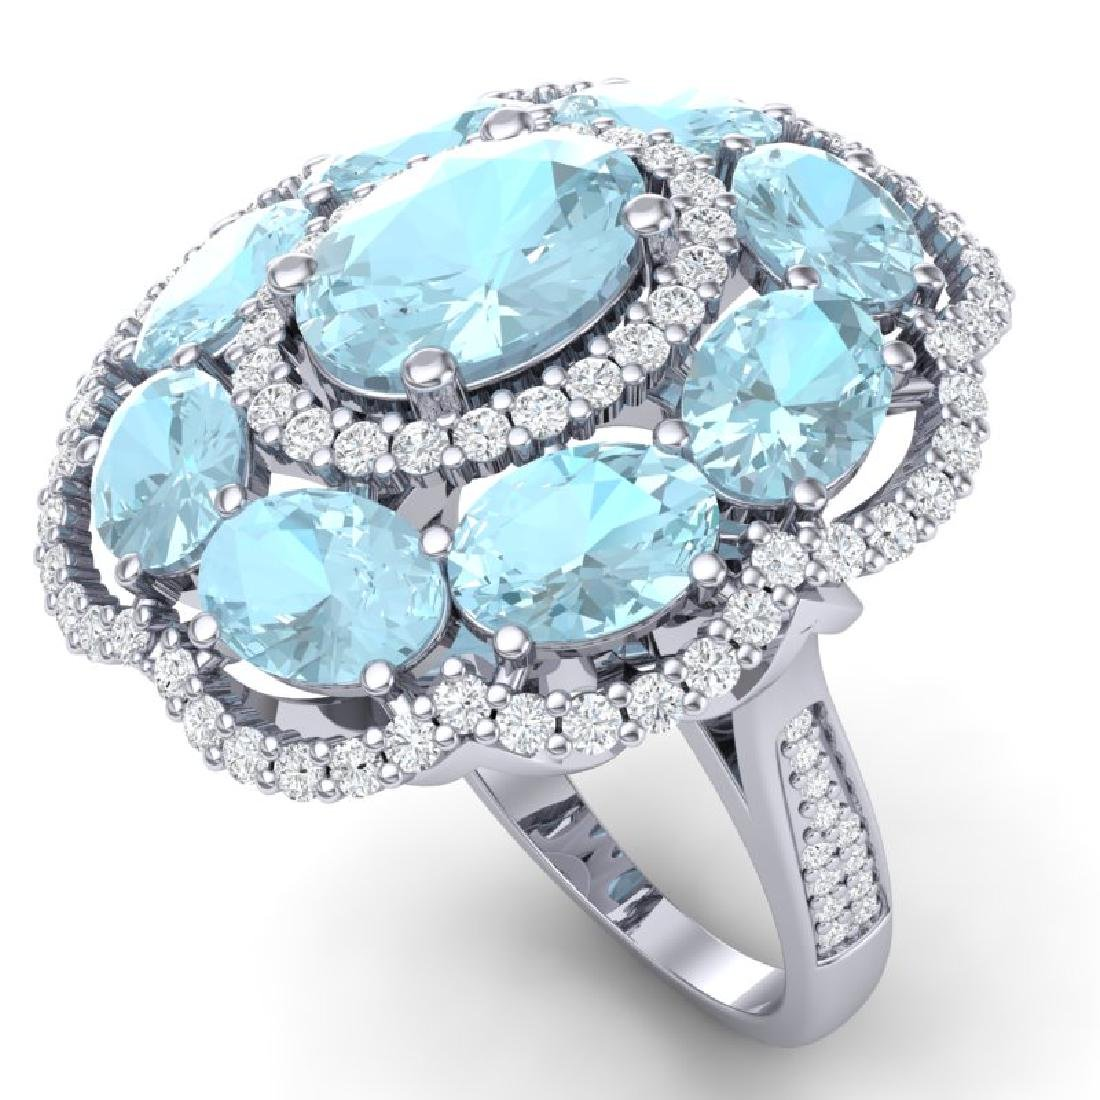 14.89 CTW Royalty Sky Topaz & VS Diamond Ring 18K White